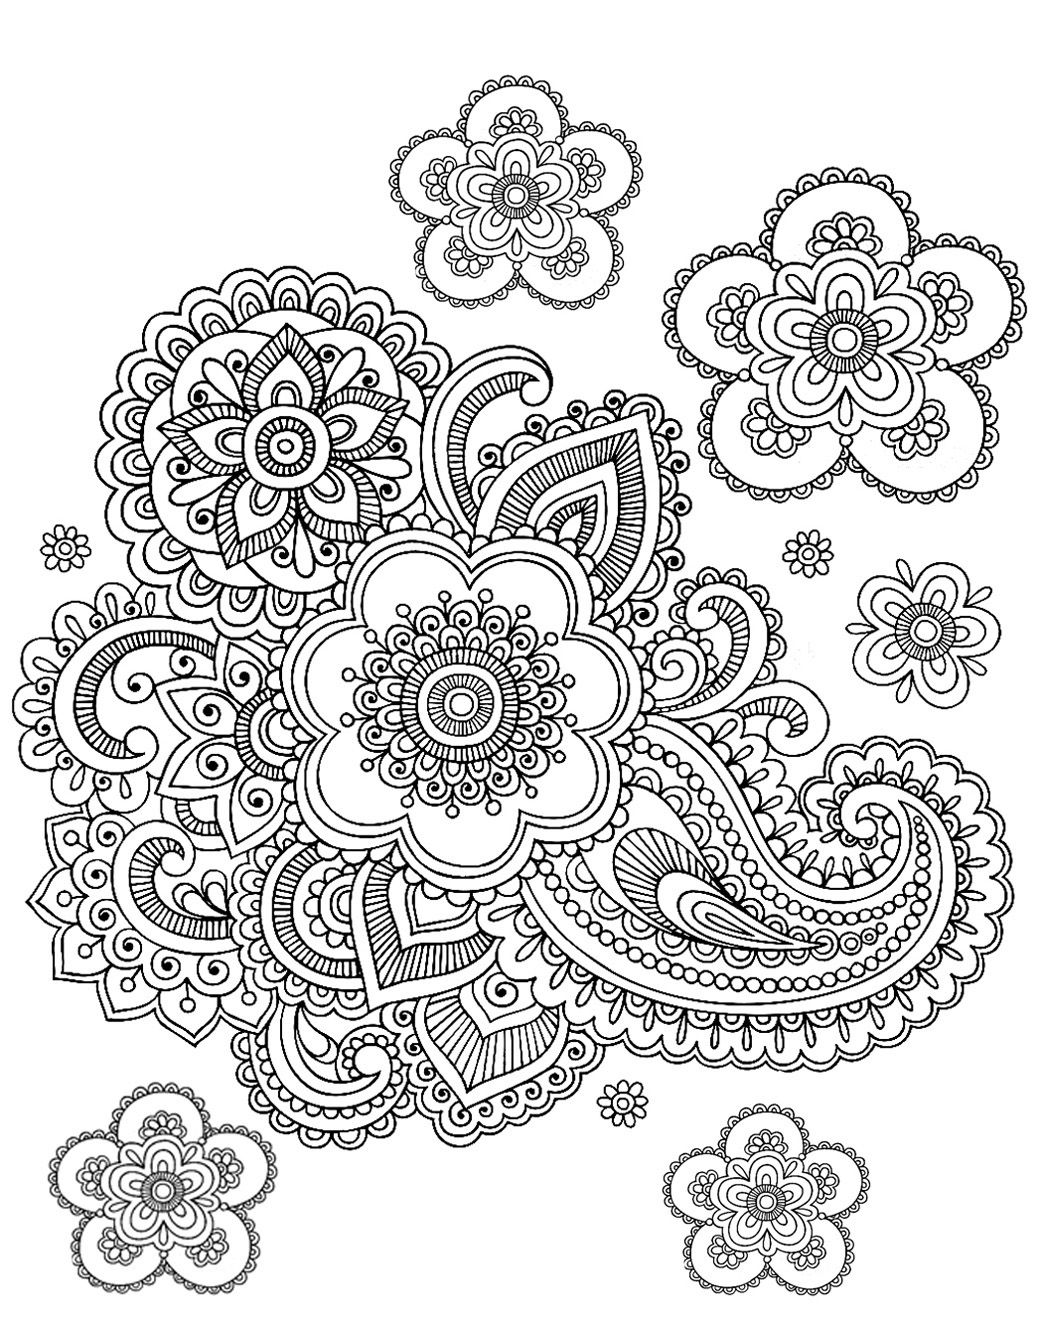 Free Coloring Page «coloring Adult Paisley Difficult» Difficult